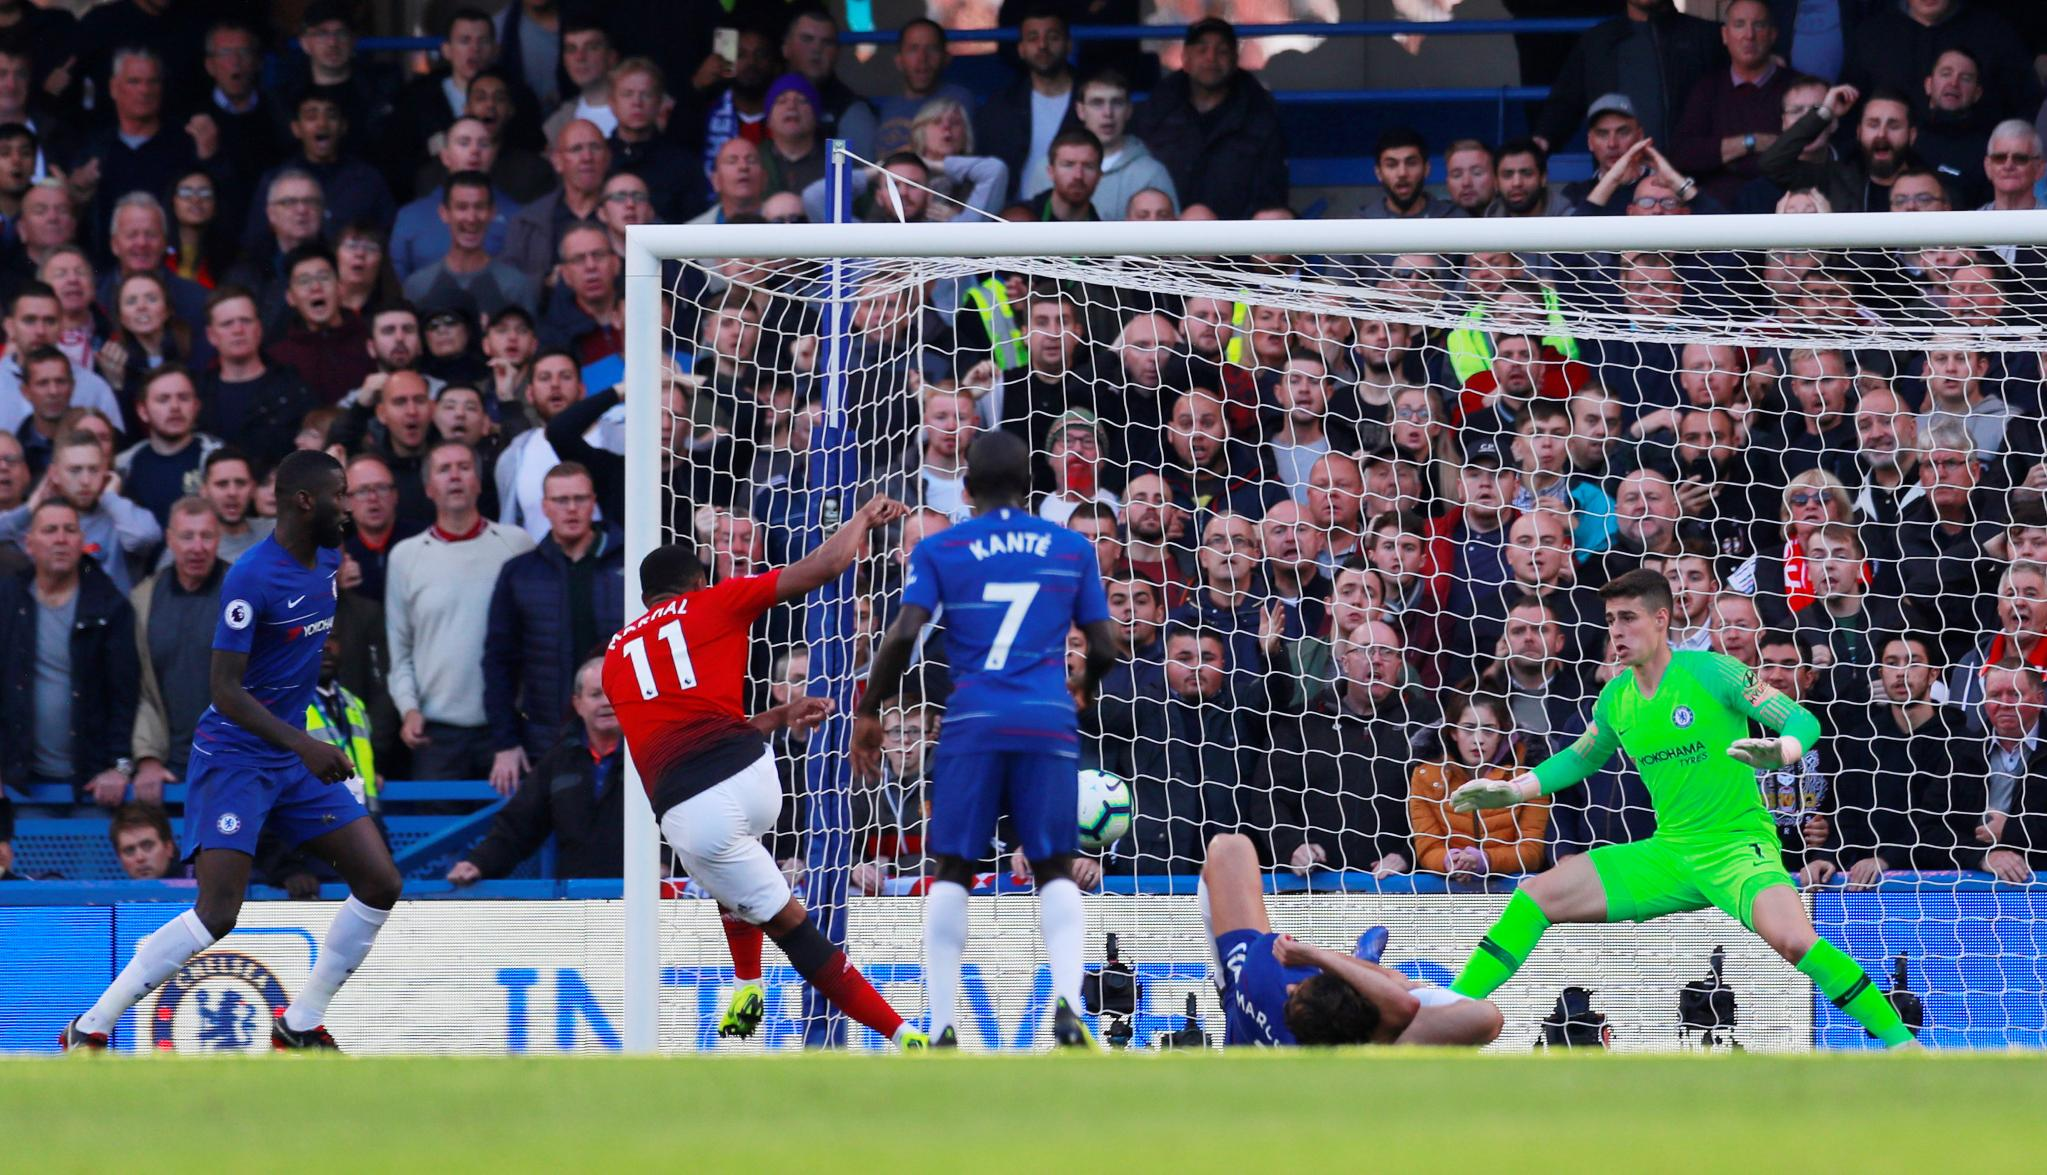 �� @AnthonyMartial on target ��  Chelsea 1-1 Man Utd (61 mins)  #CHEMUN #PL https://t.co/dQE8mZ1xfu